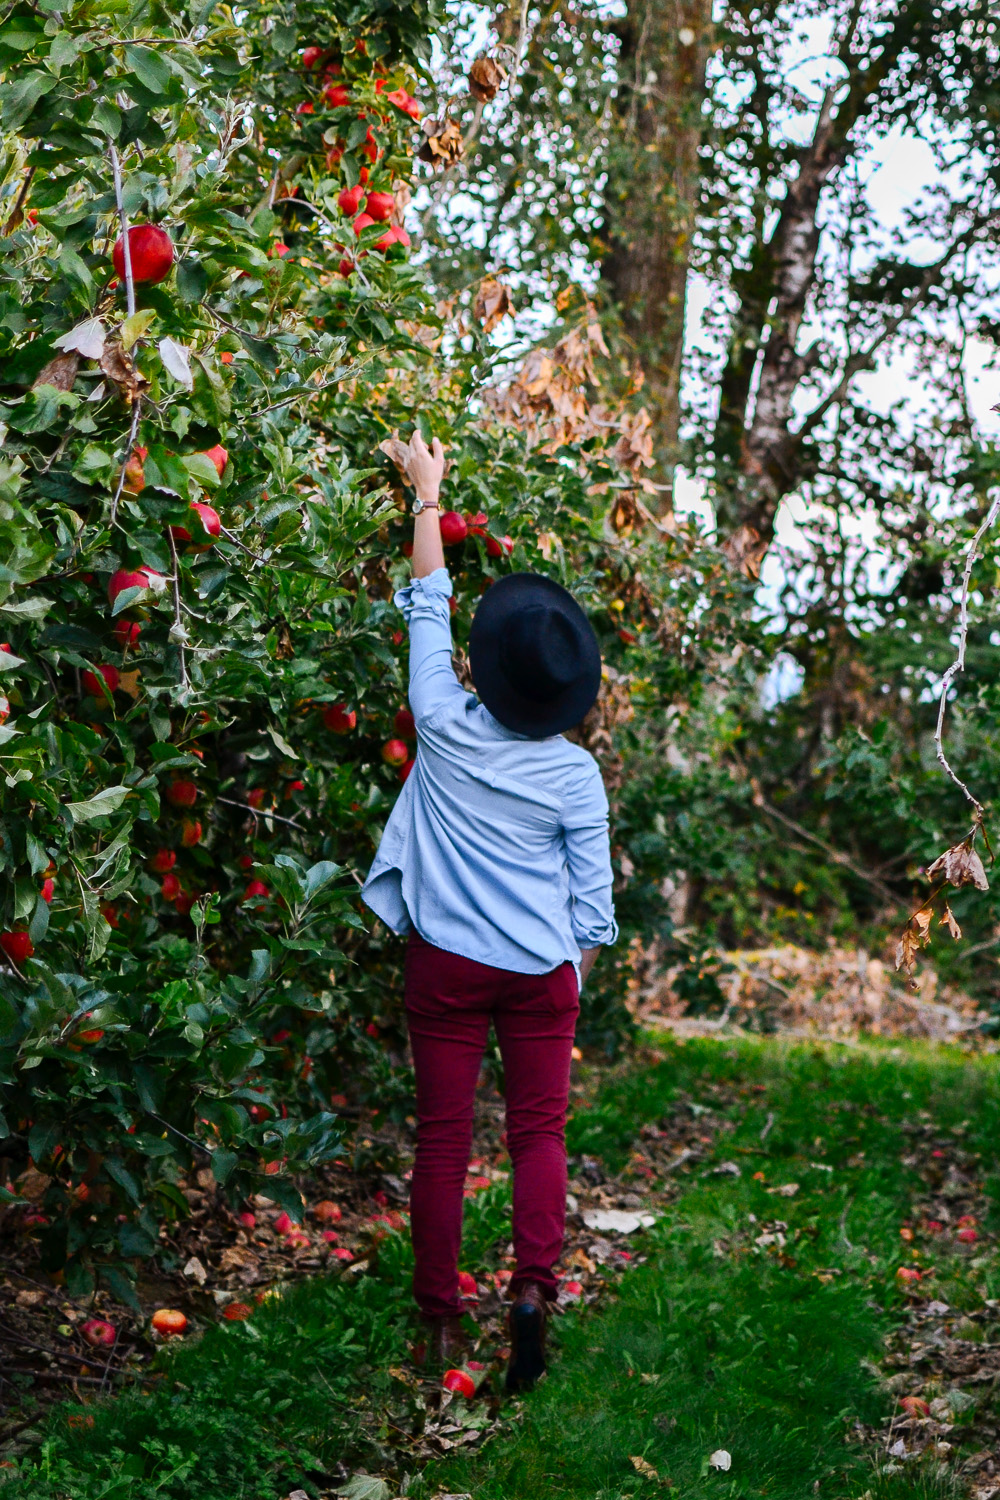 Apple and pumpkin picking at Willow view farms - photos by me.